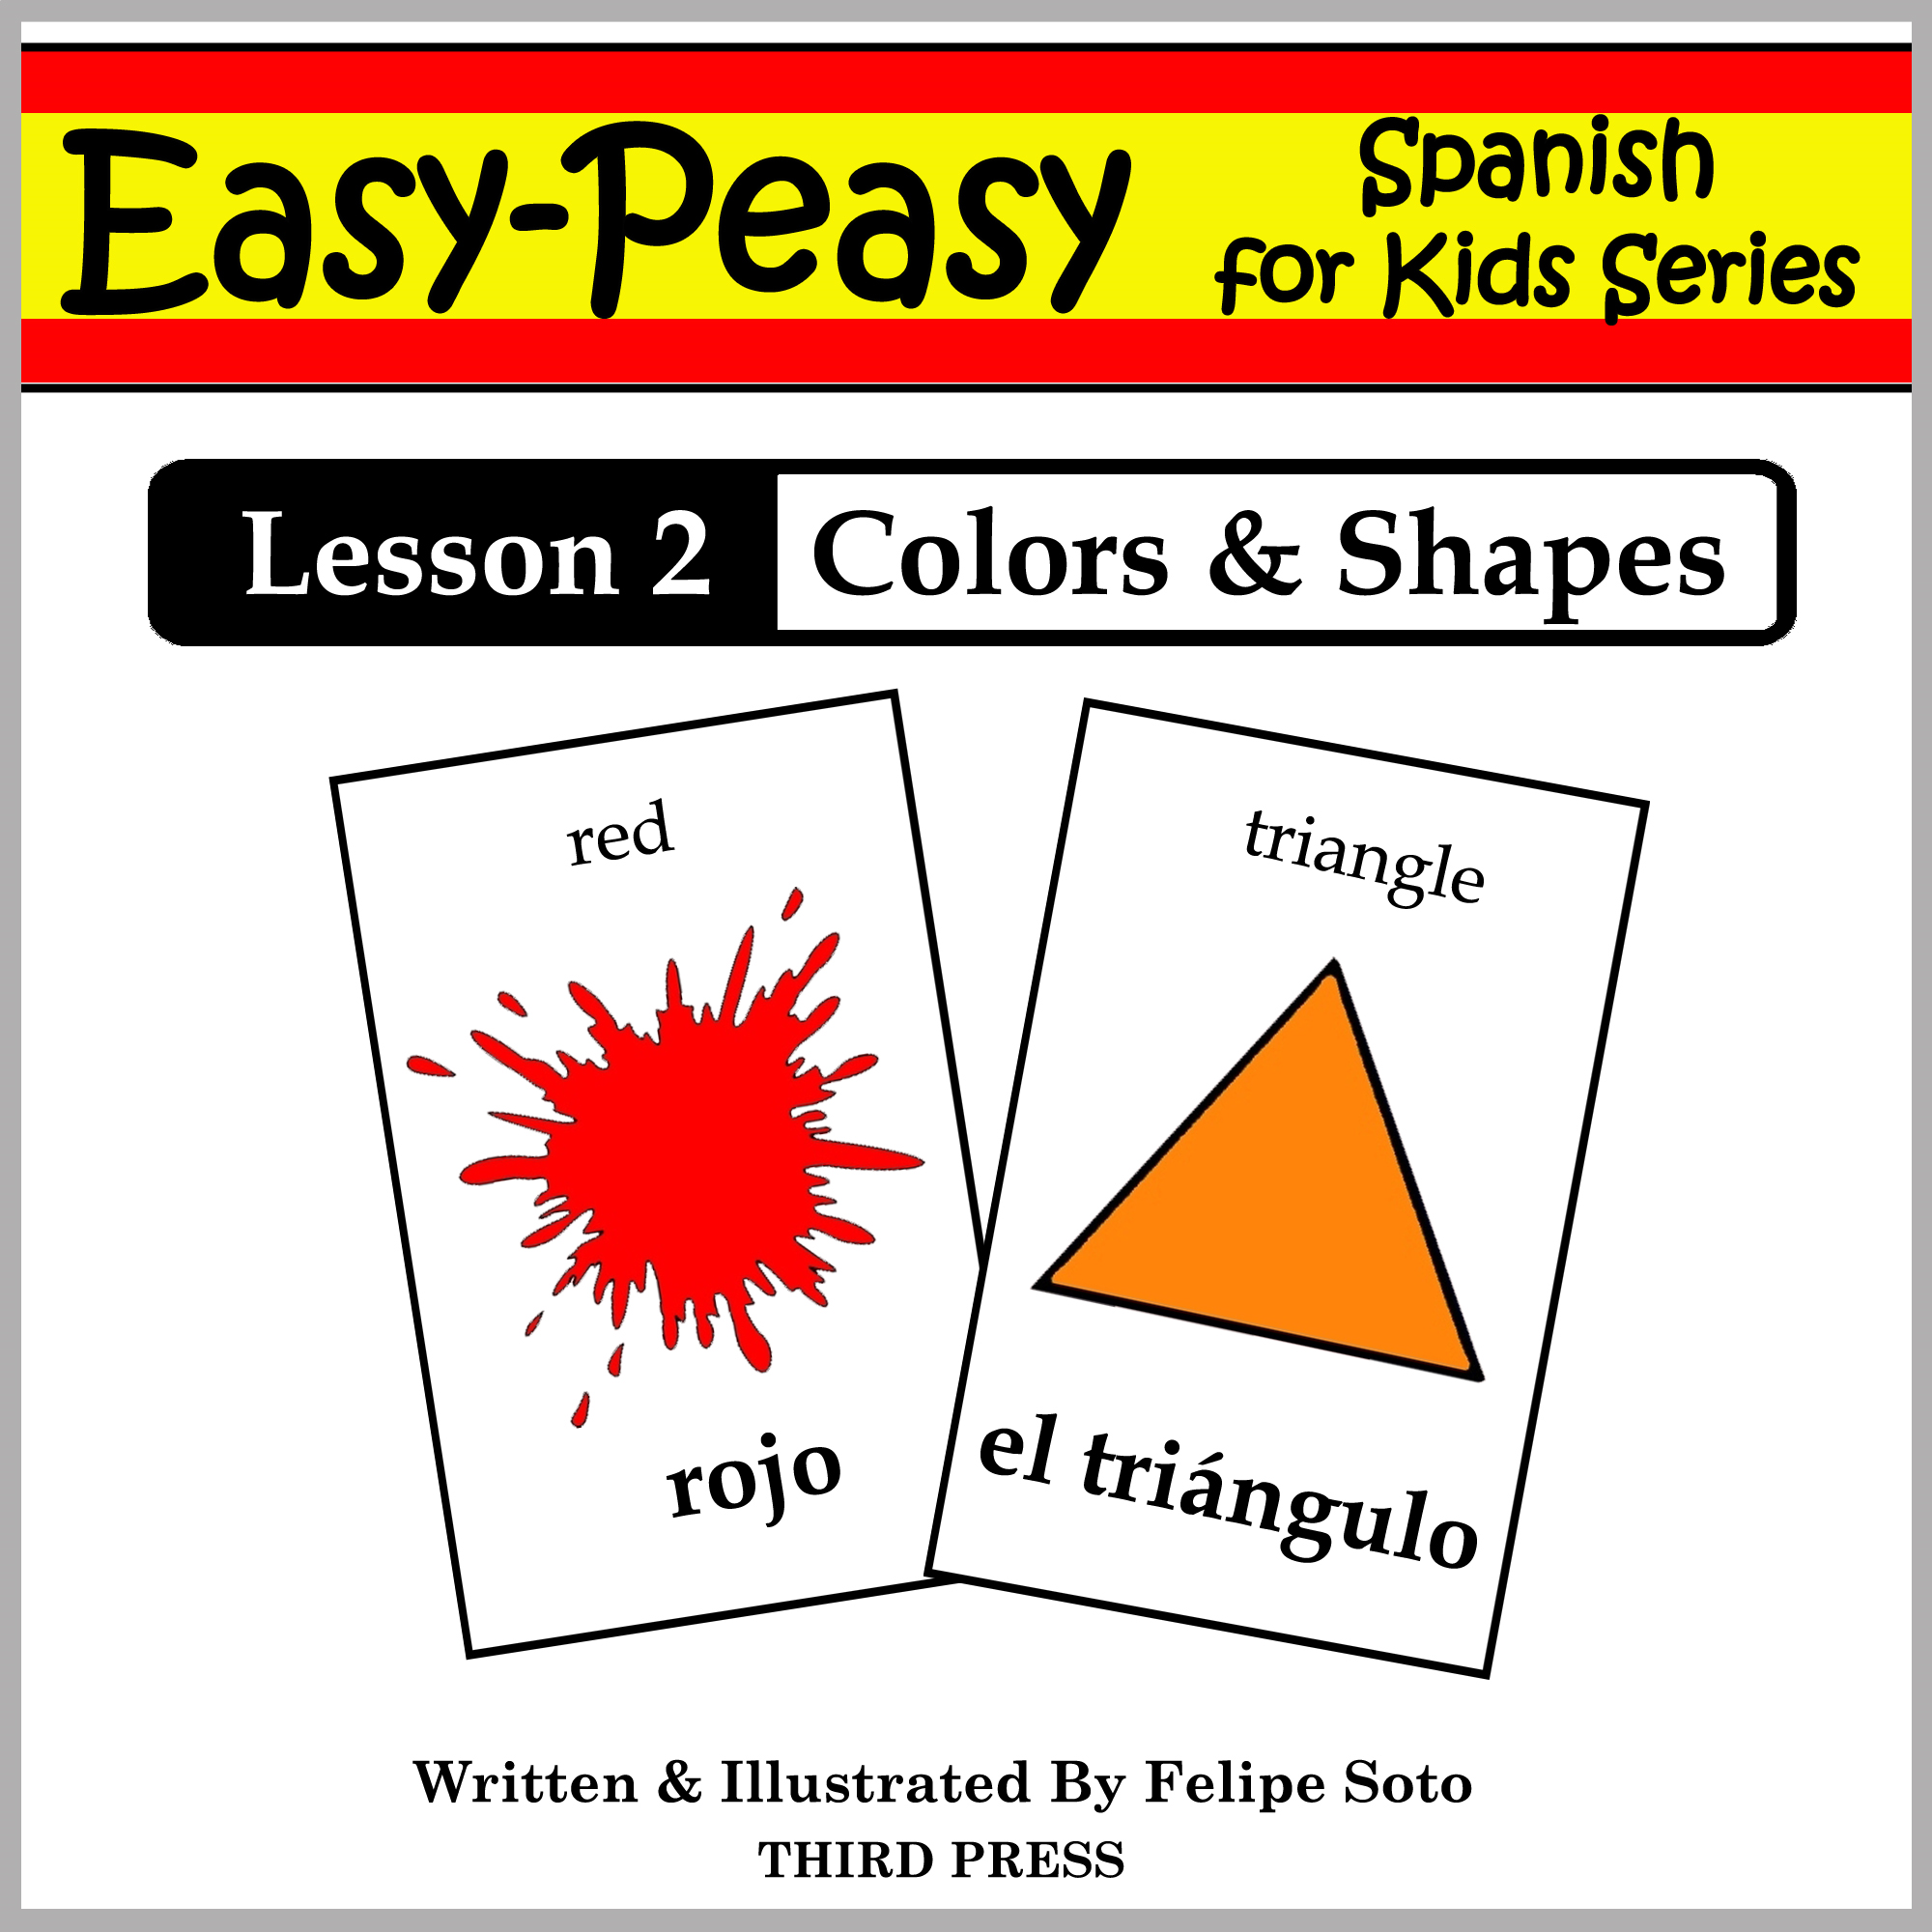 Spanish Lesson 2: Colors & Shapes